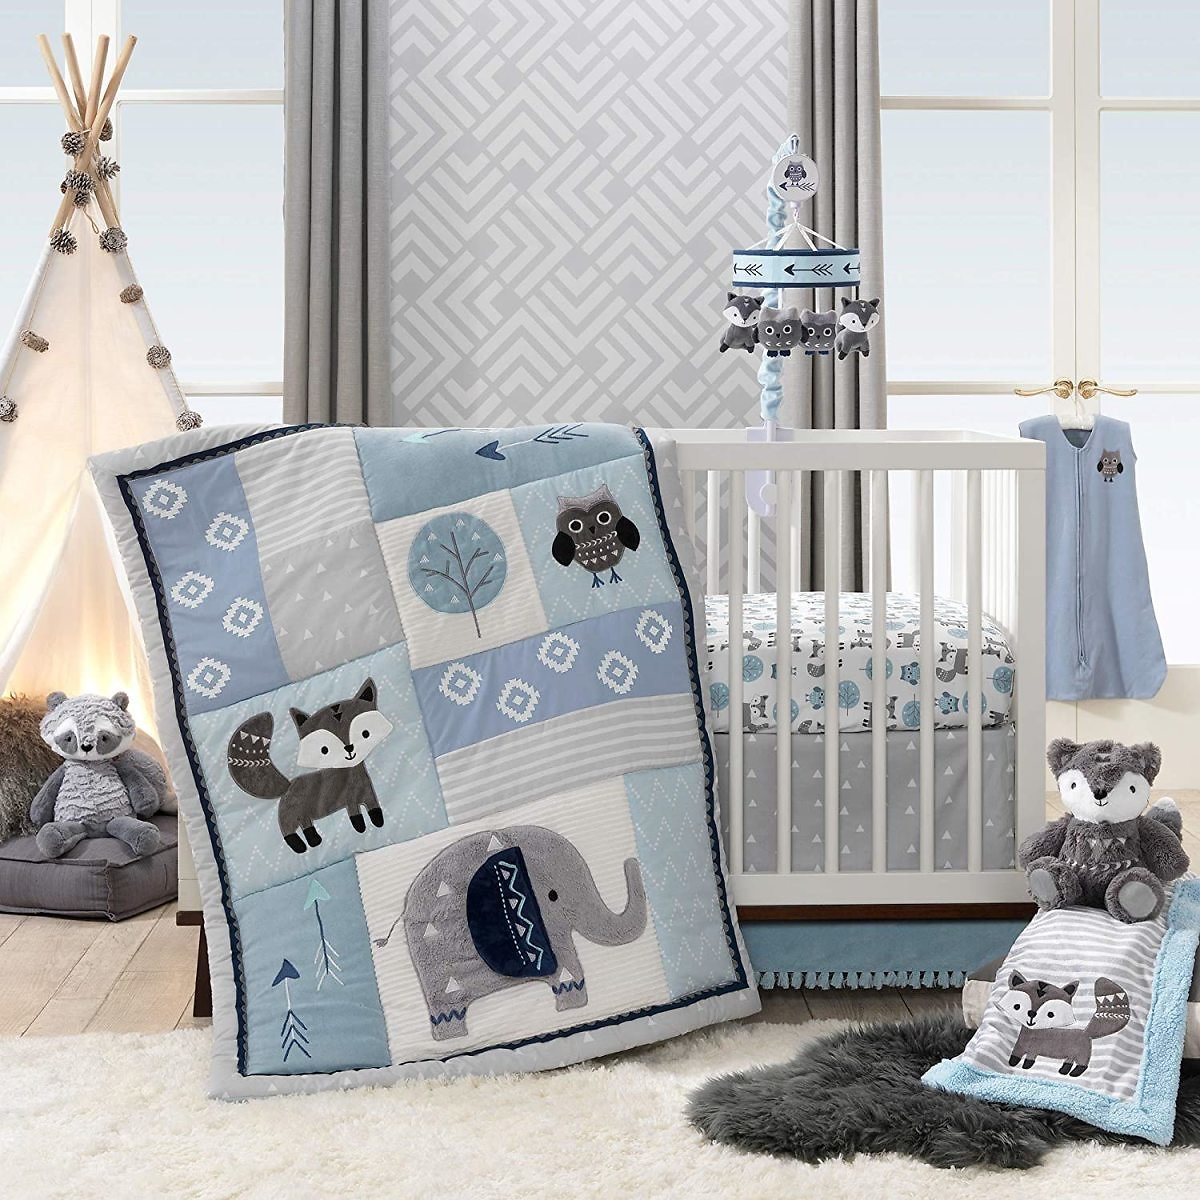 Lambs & Ivy Stay Wild 4-Piece Crib Bedding Set